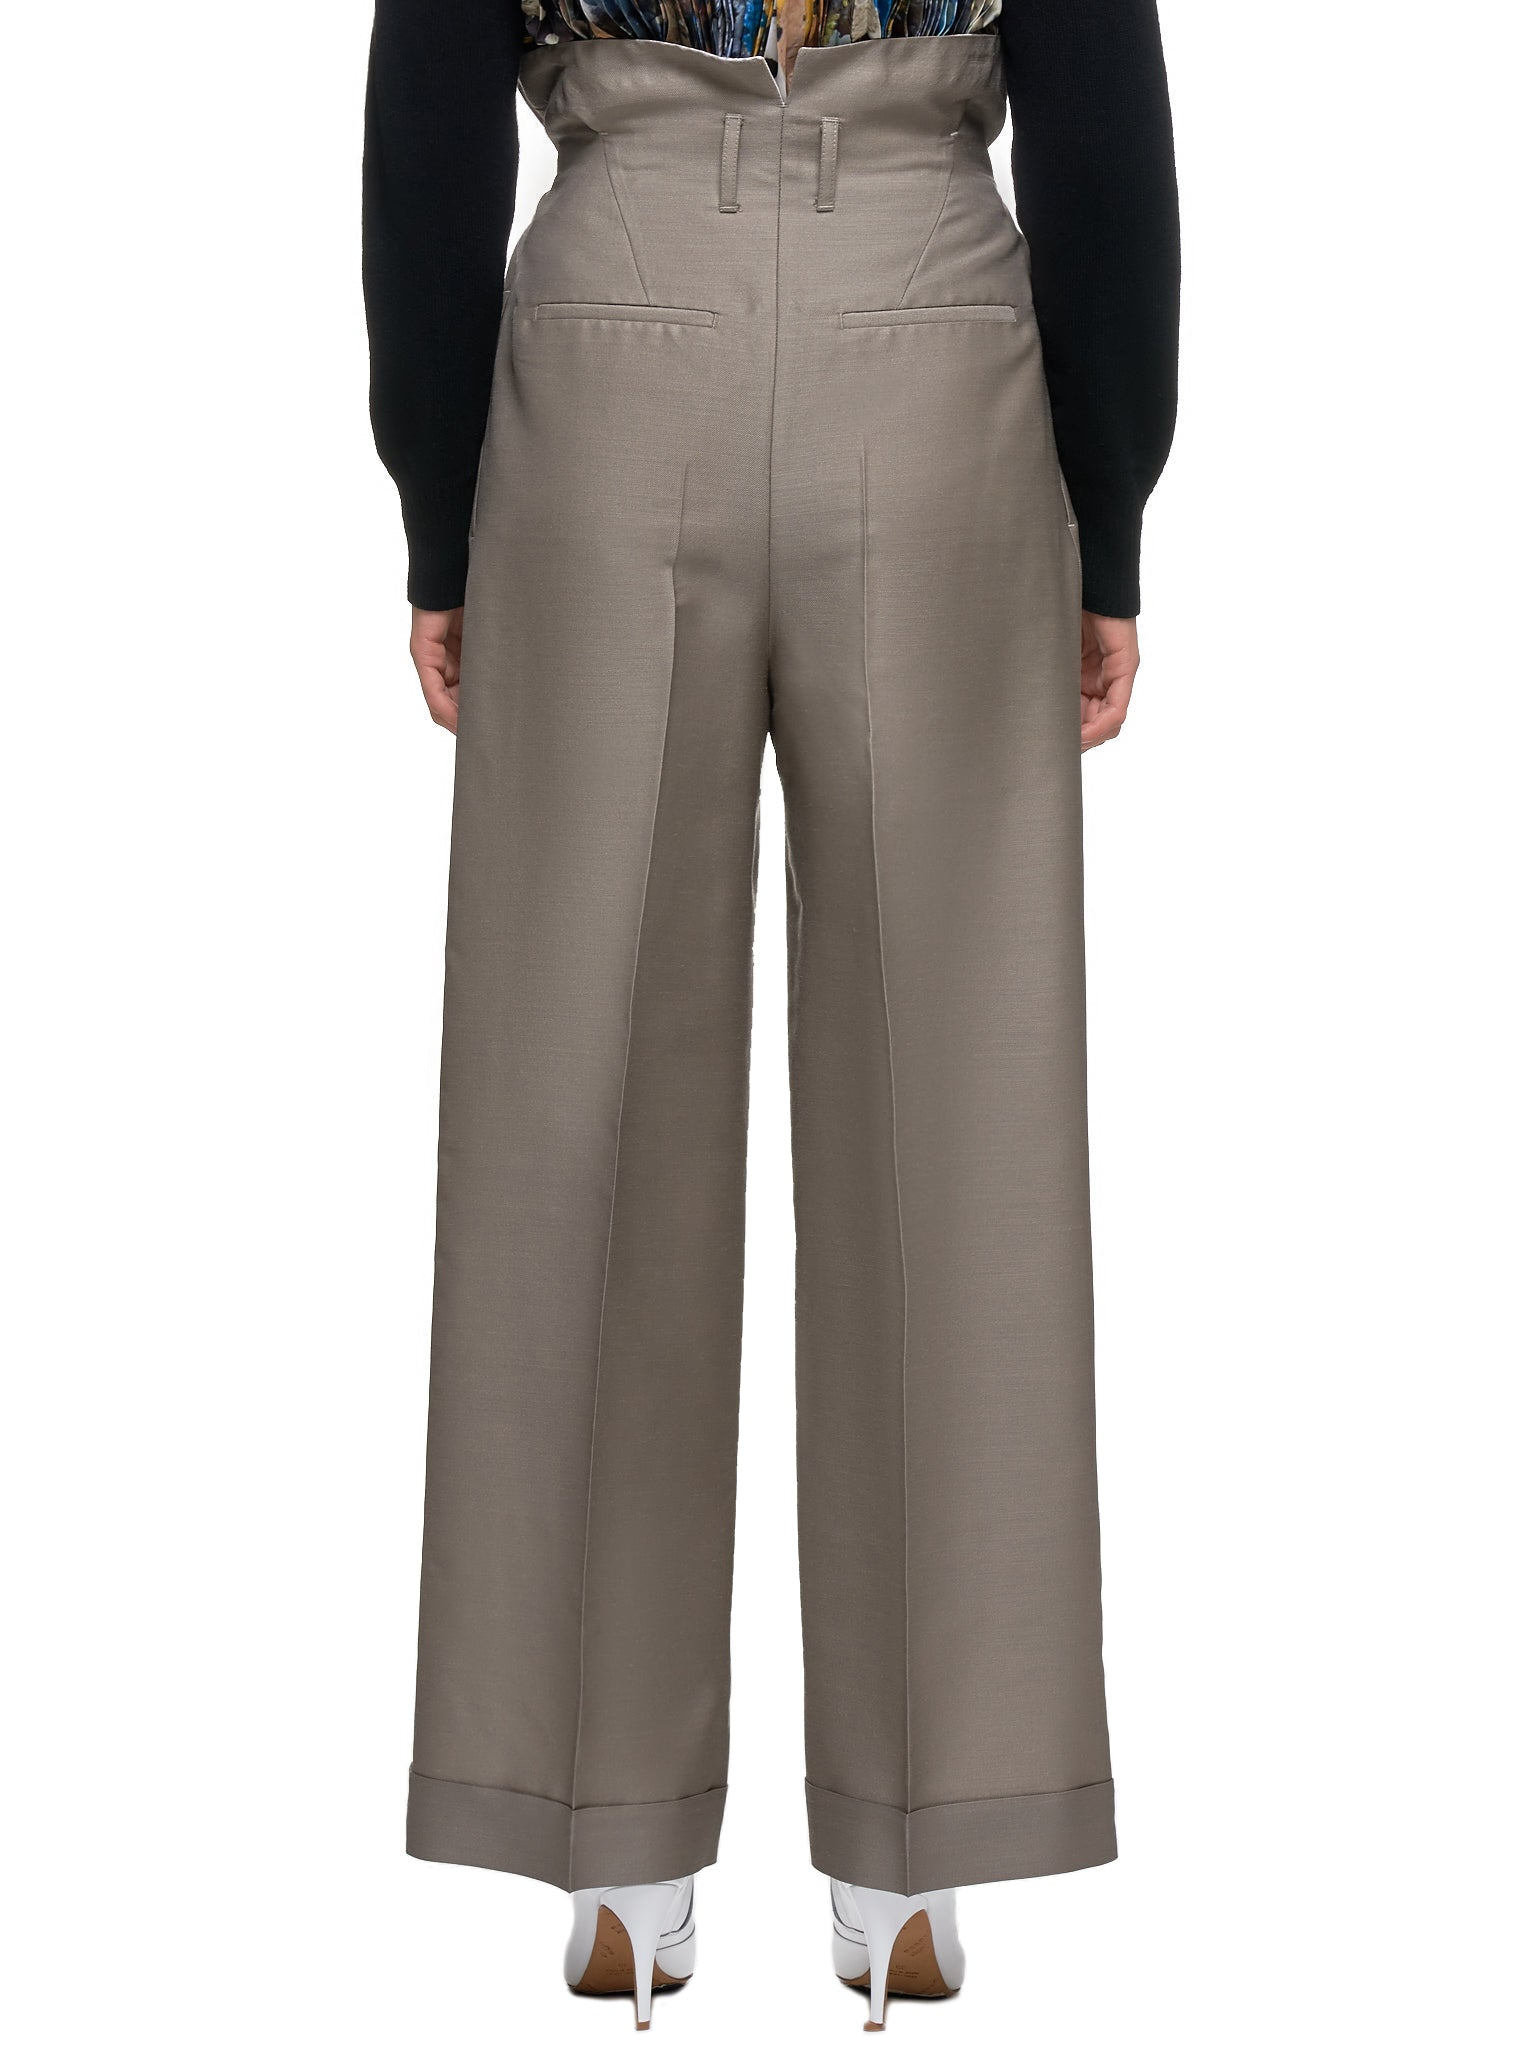 Acne Studios Pants - Hlorenzo Back